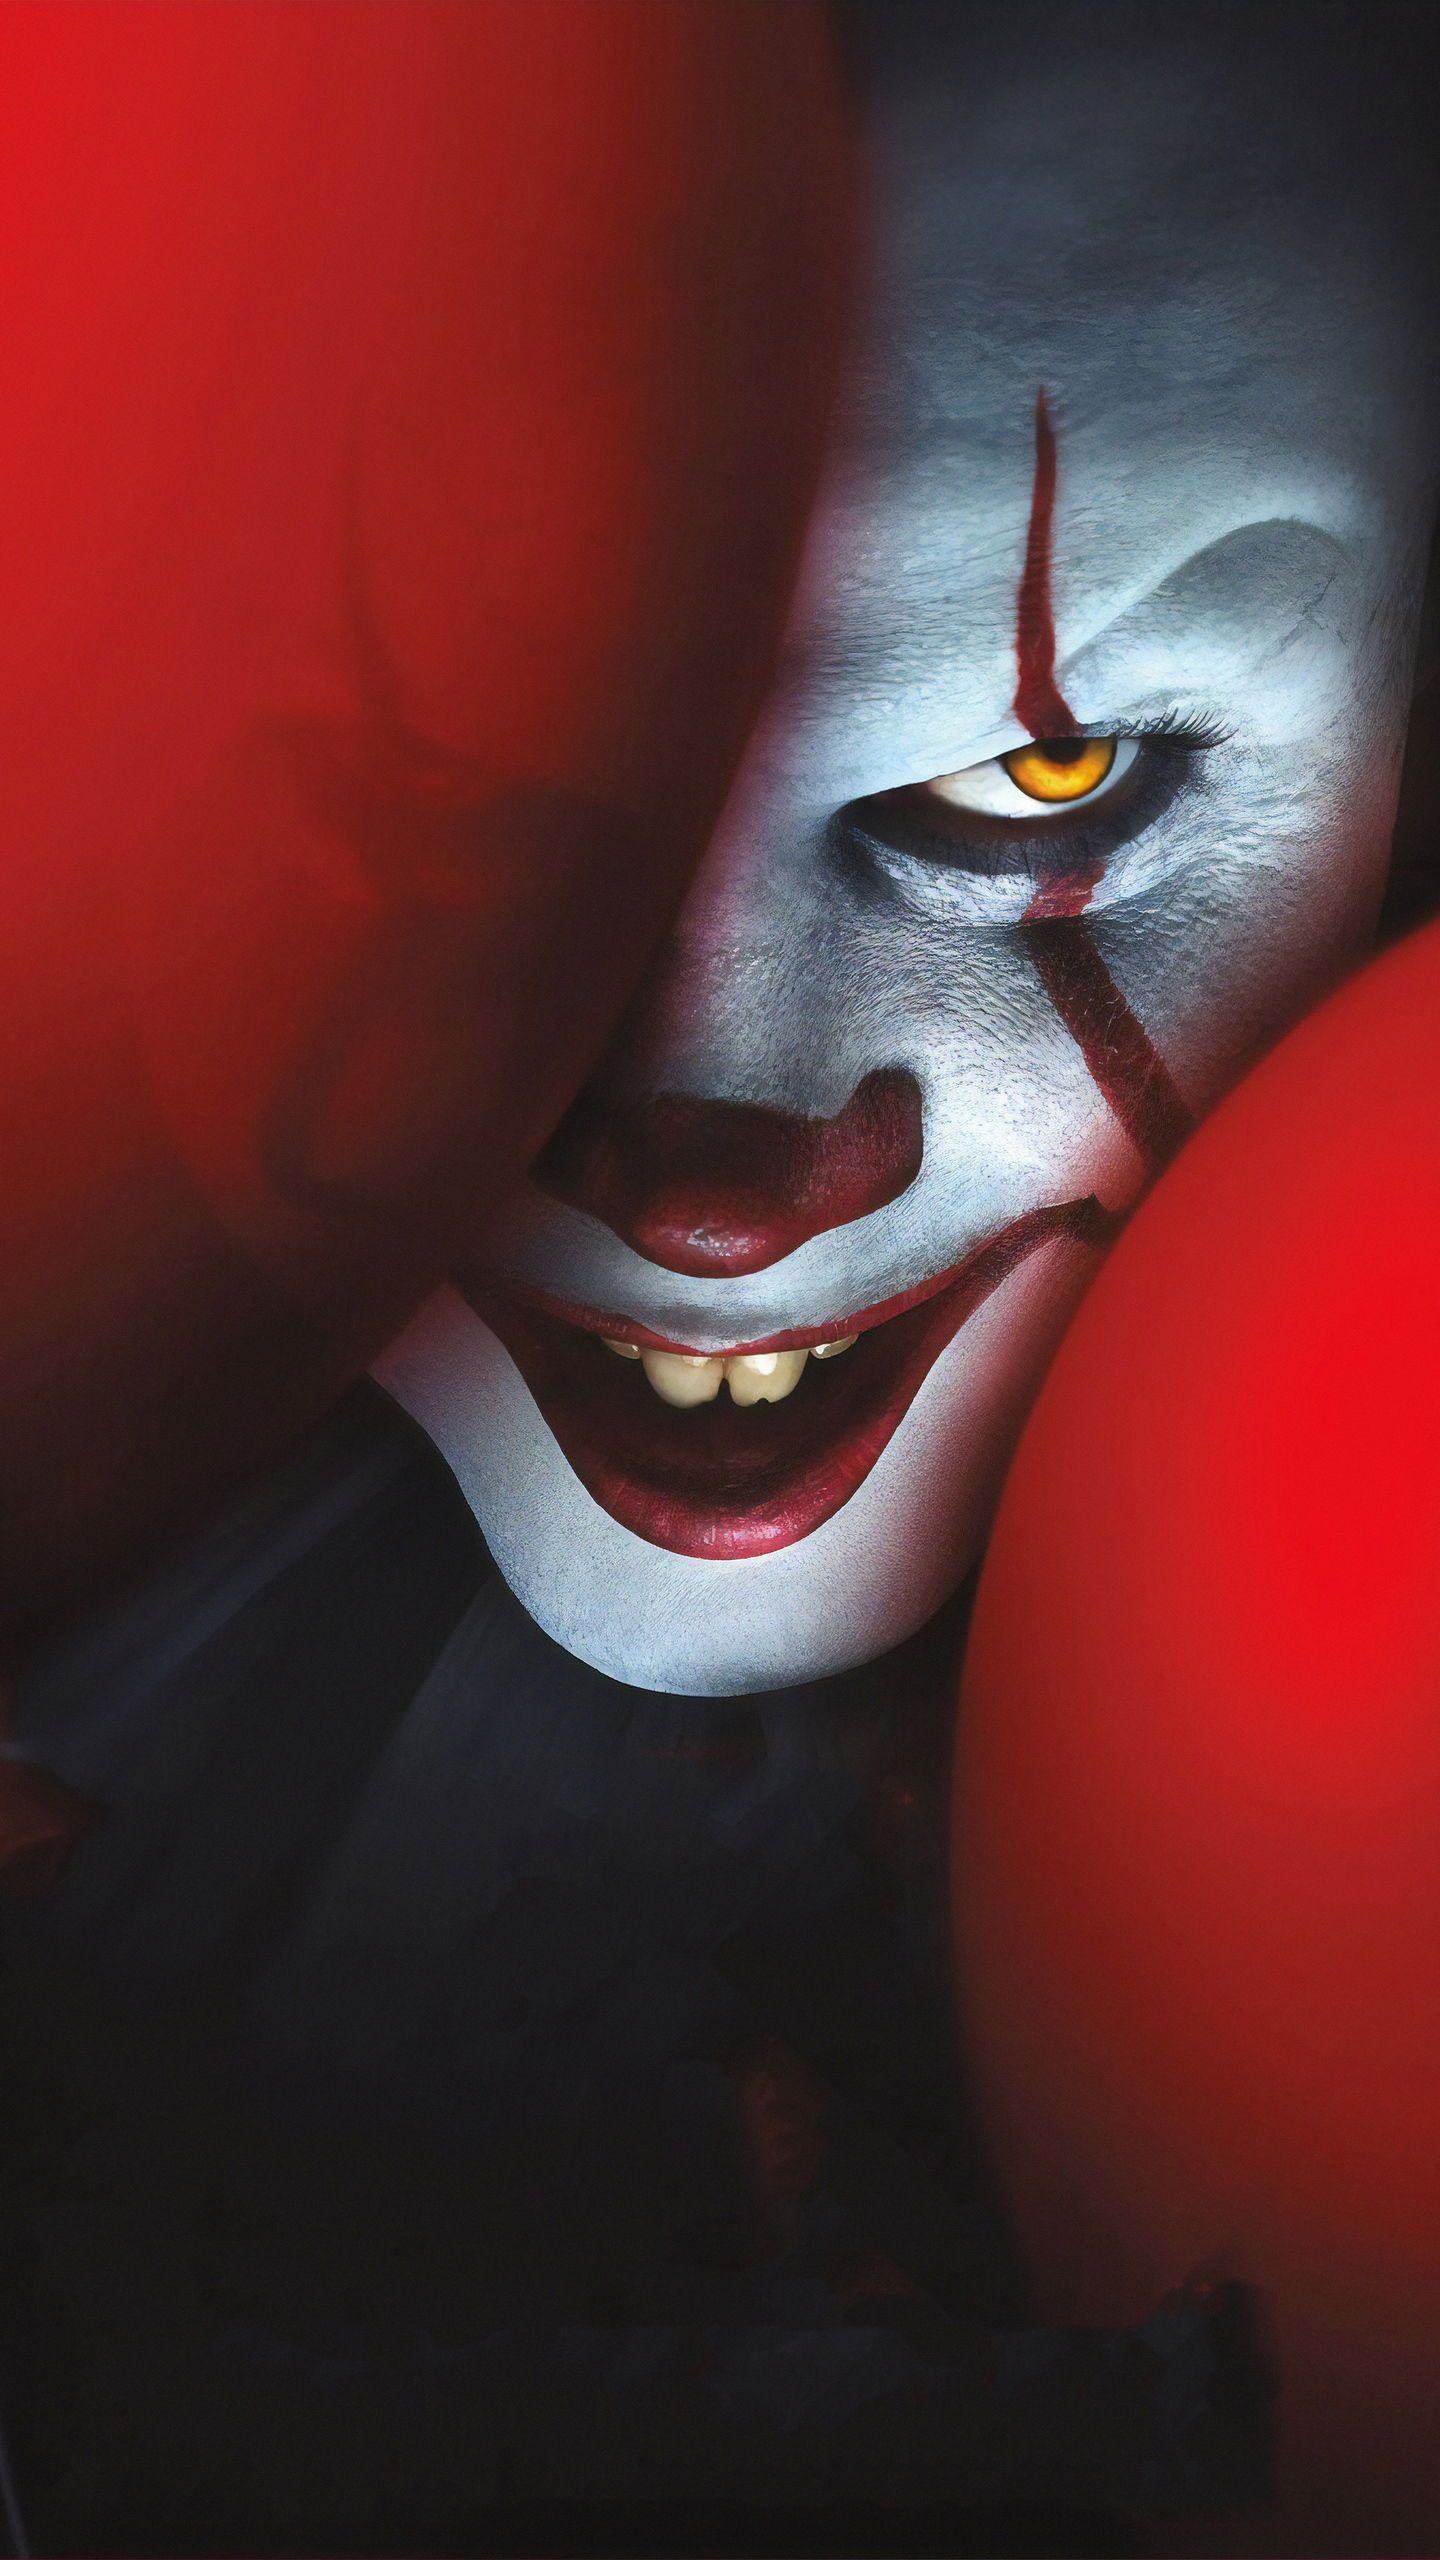 It Chapter Two Review Less Scary More Funny Warner Bros Pennywise Stephen King Horror Movie Review Joker Hd Wallpaper Pennywise The Clown Creepy Faces